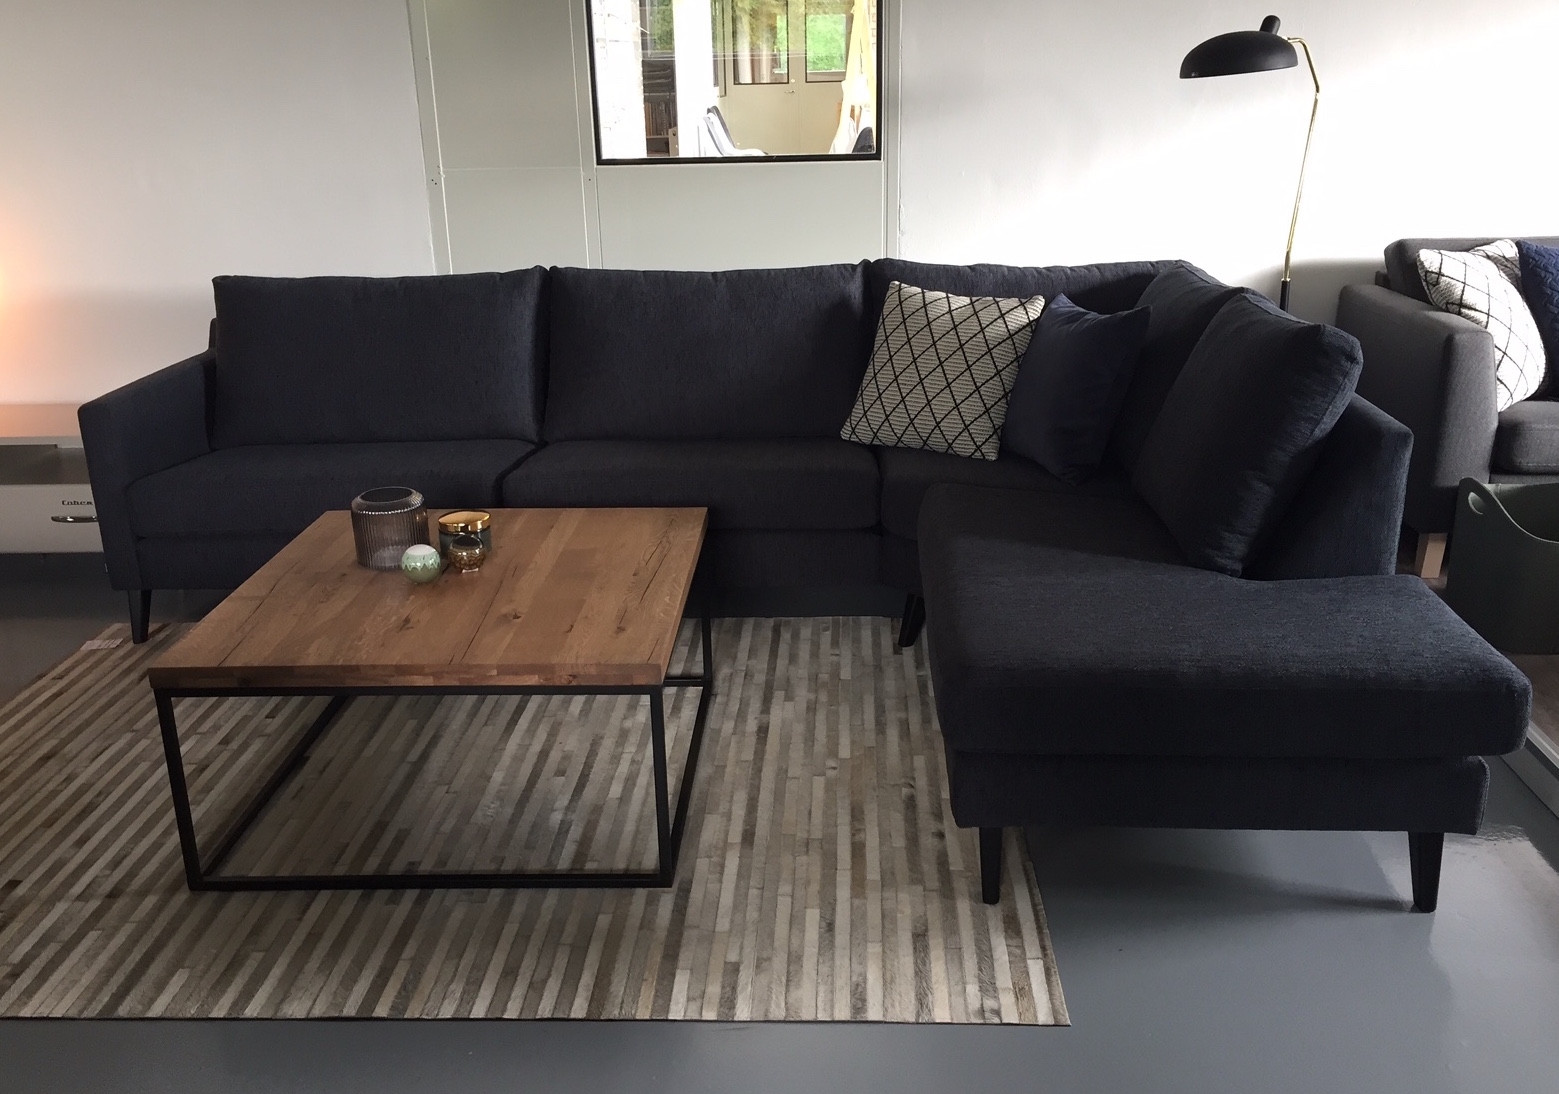 Picture of: Flot 3 Pers Sofa Med Chaiselong Her Vist I Morkeblat Cortina Stof